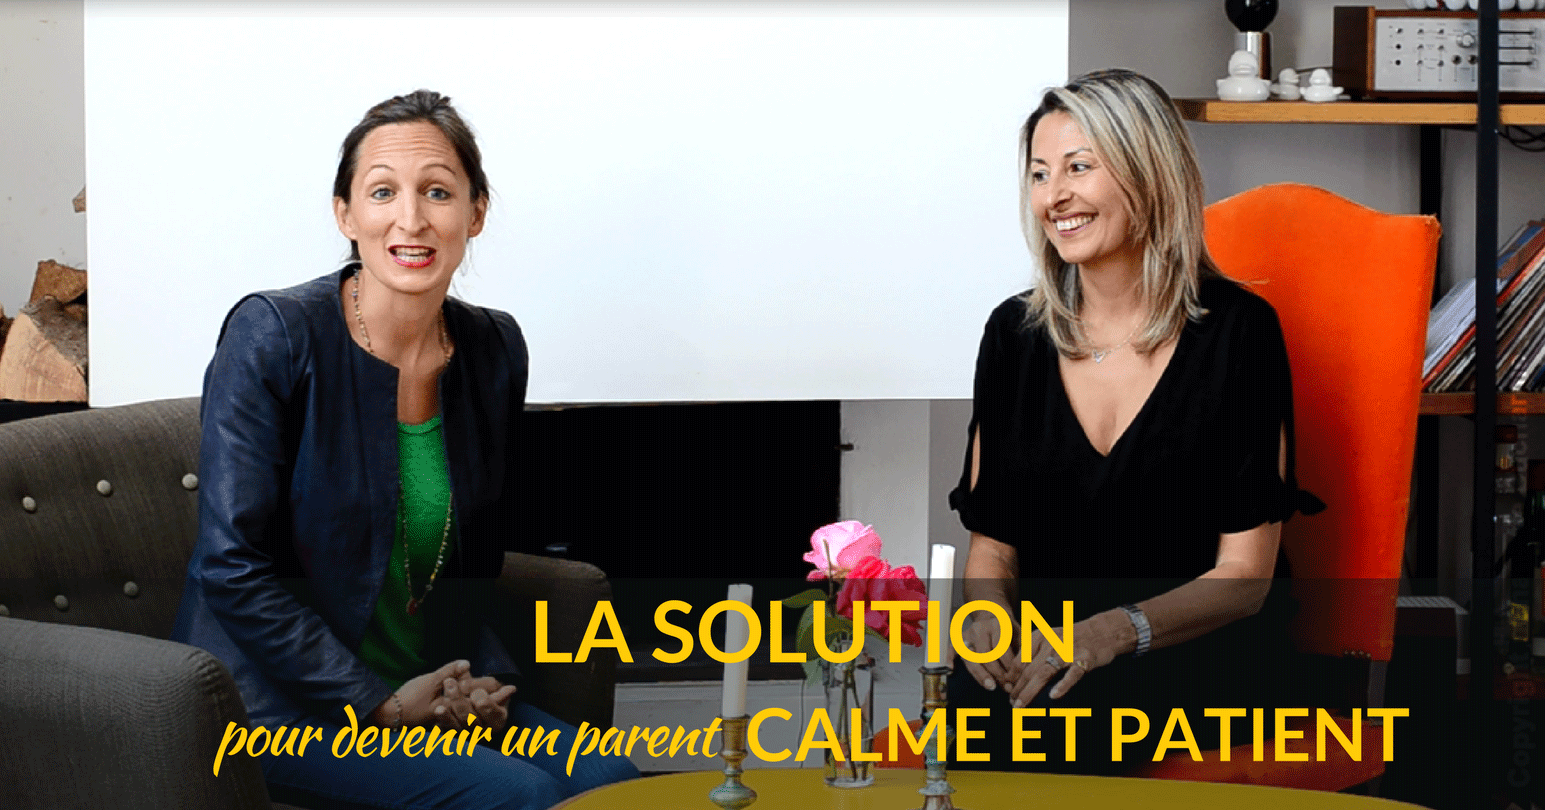 MINIATURE la solution pour devenir un parent calme et patient